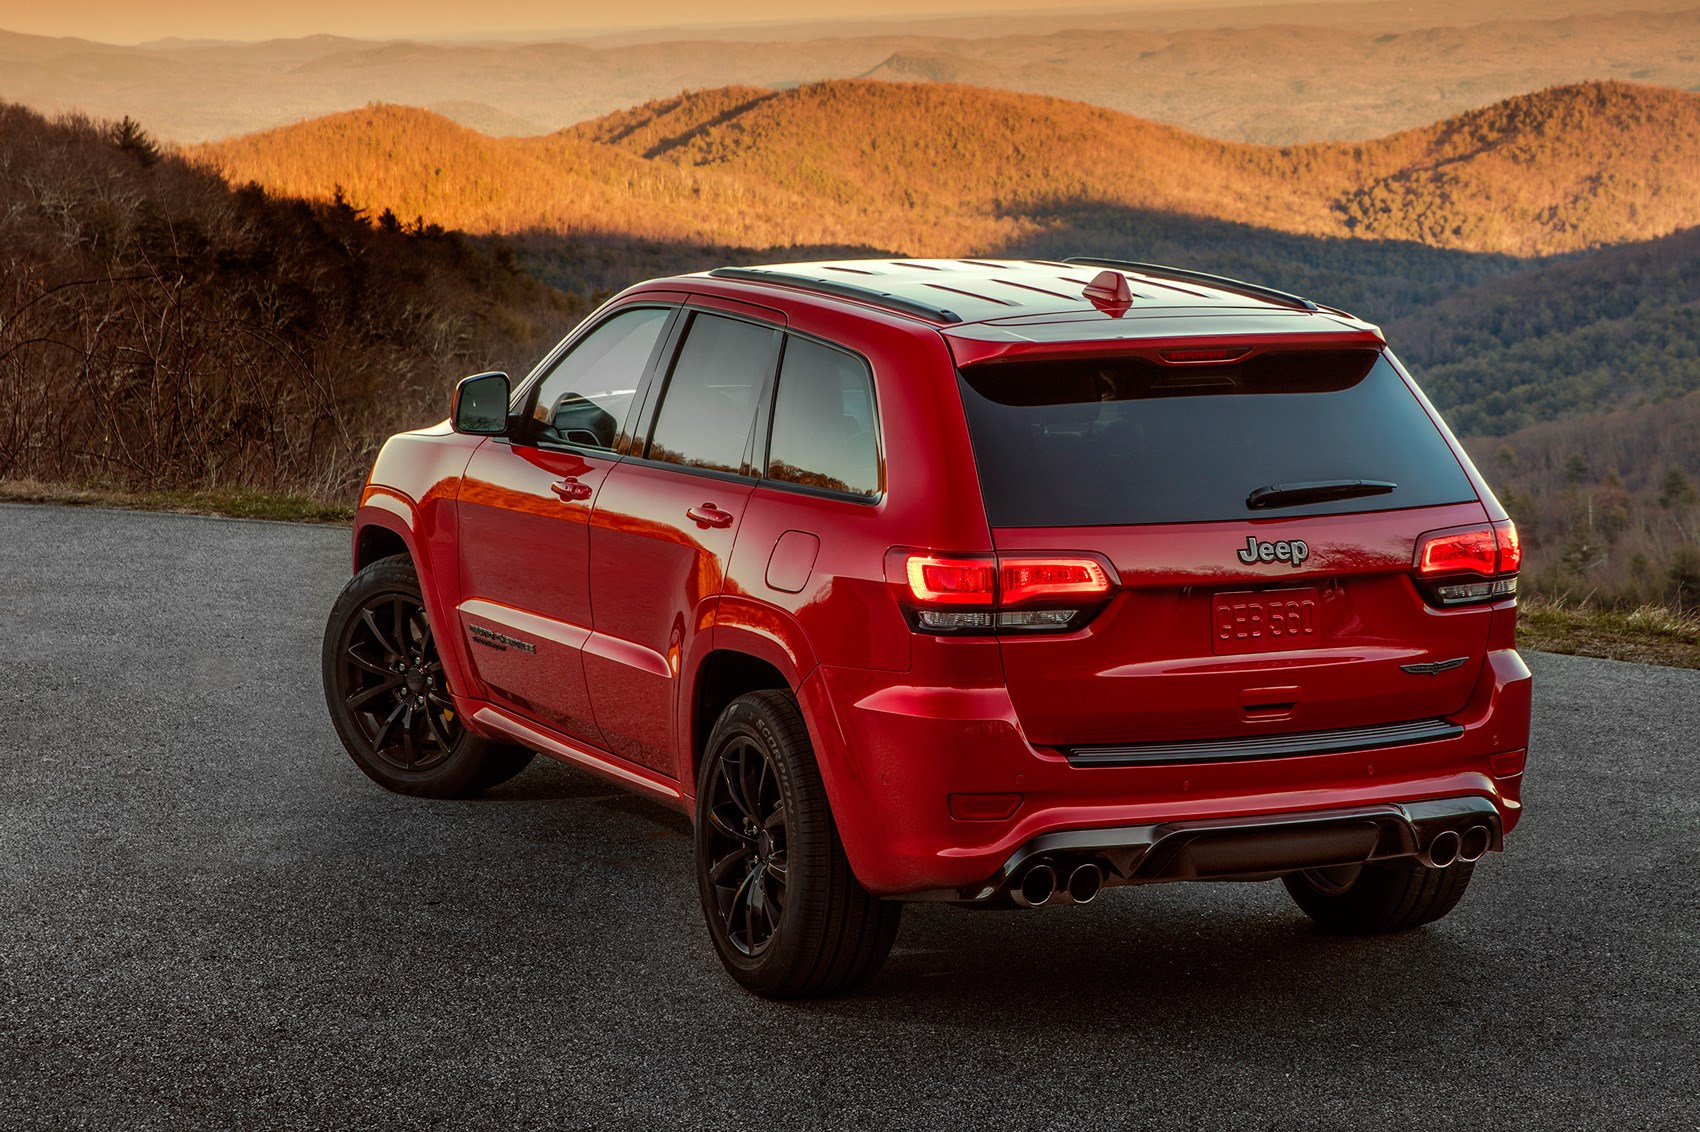 5 reasons to be excited about the Jeep Compass